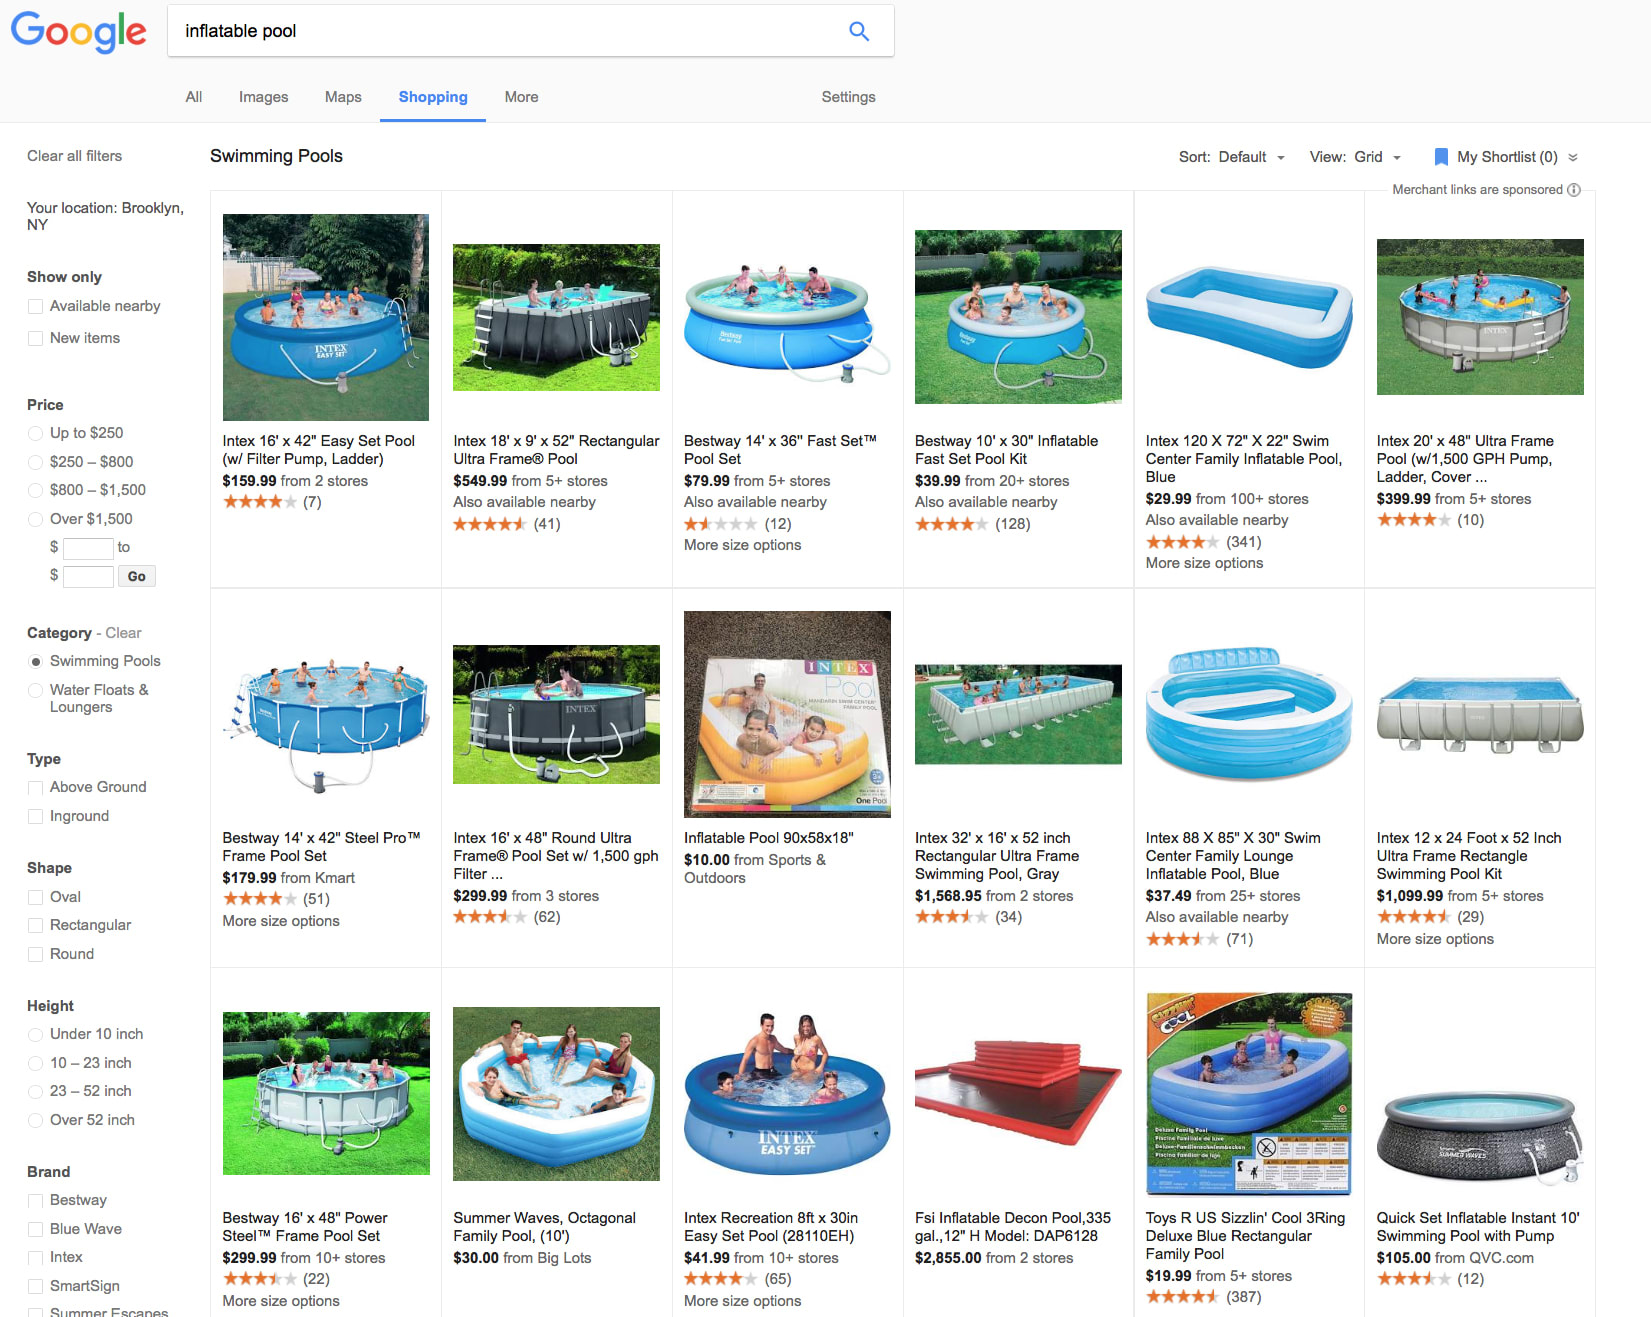 Google Shopping pools